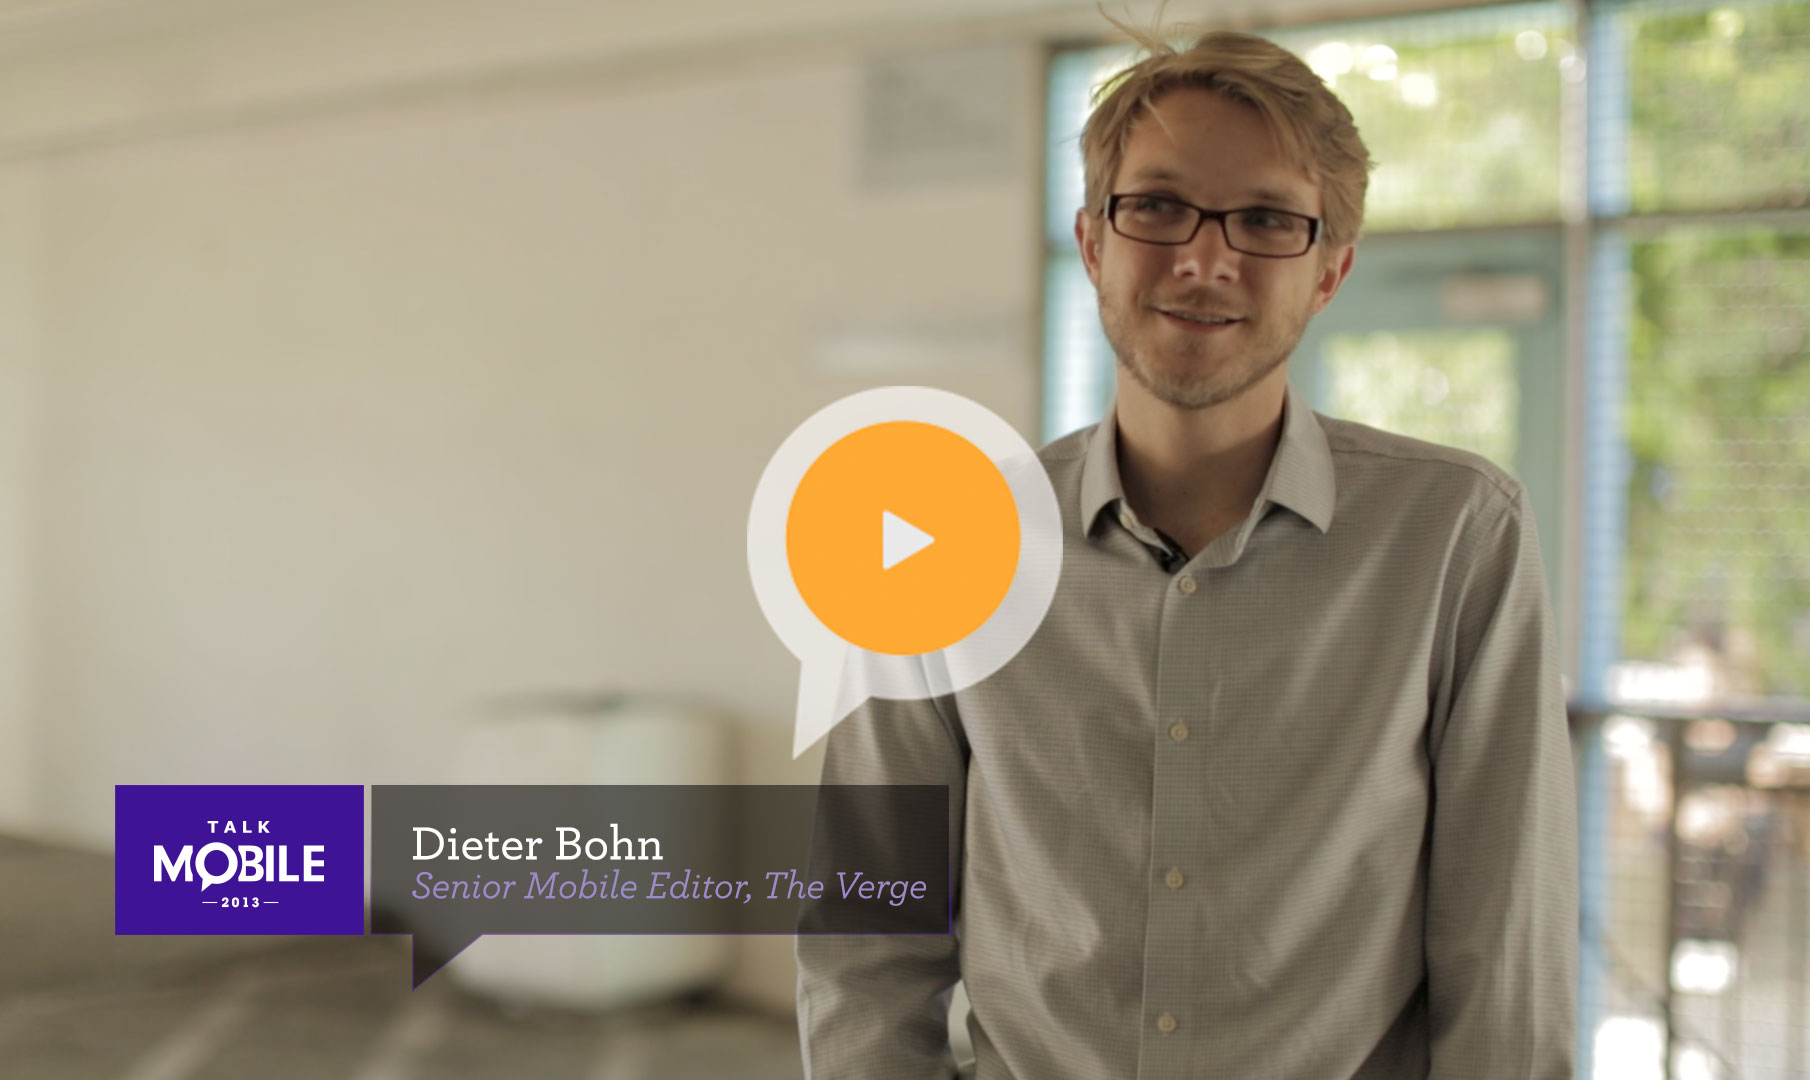 Watch Dieter Bohn talk about losing his favorite apps